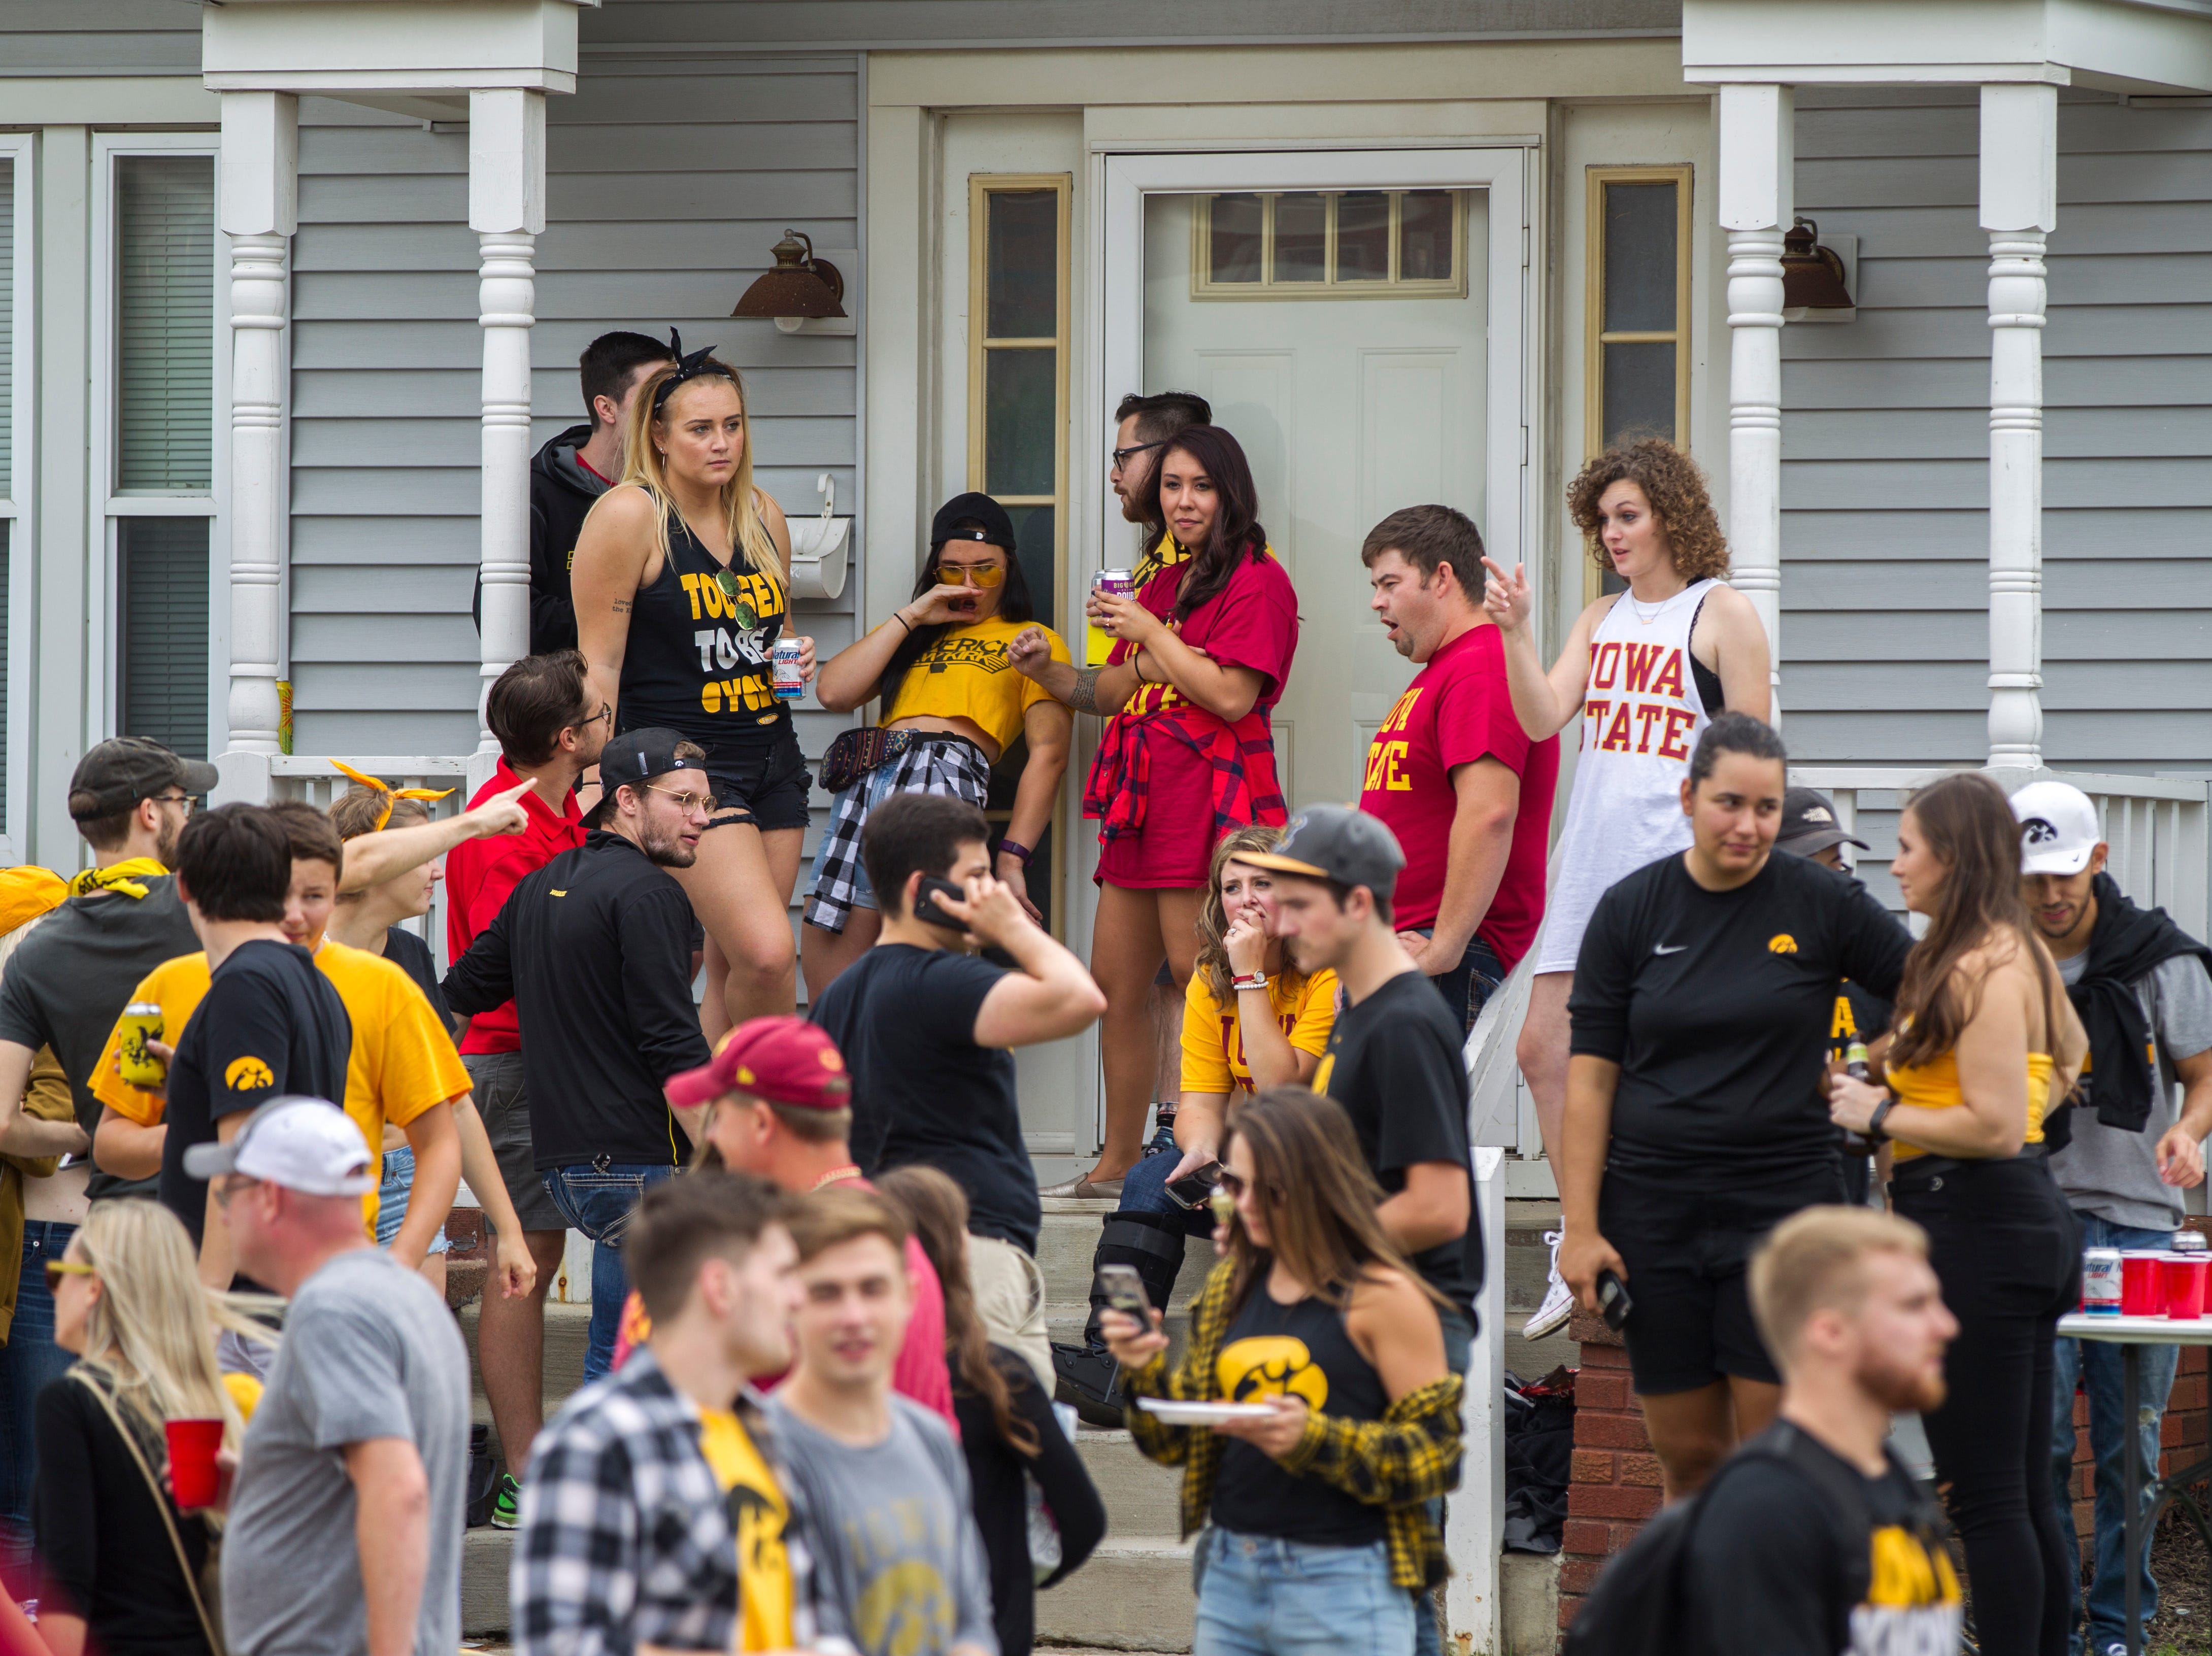 Fans tailgate off of Melrose Avenue before the Cy-Hawk NCAA football game on Saturday, Sept. 8, 2018, at Kinnick Stadium in Iowa City.